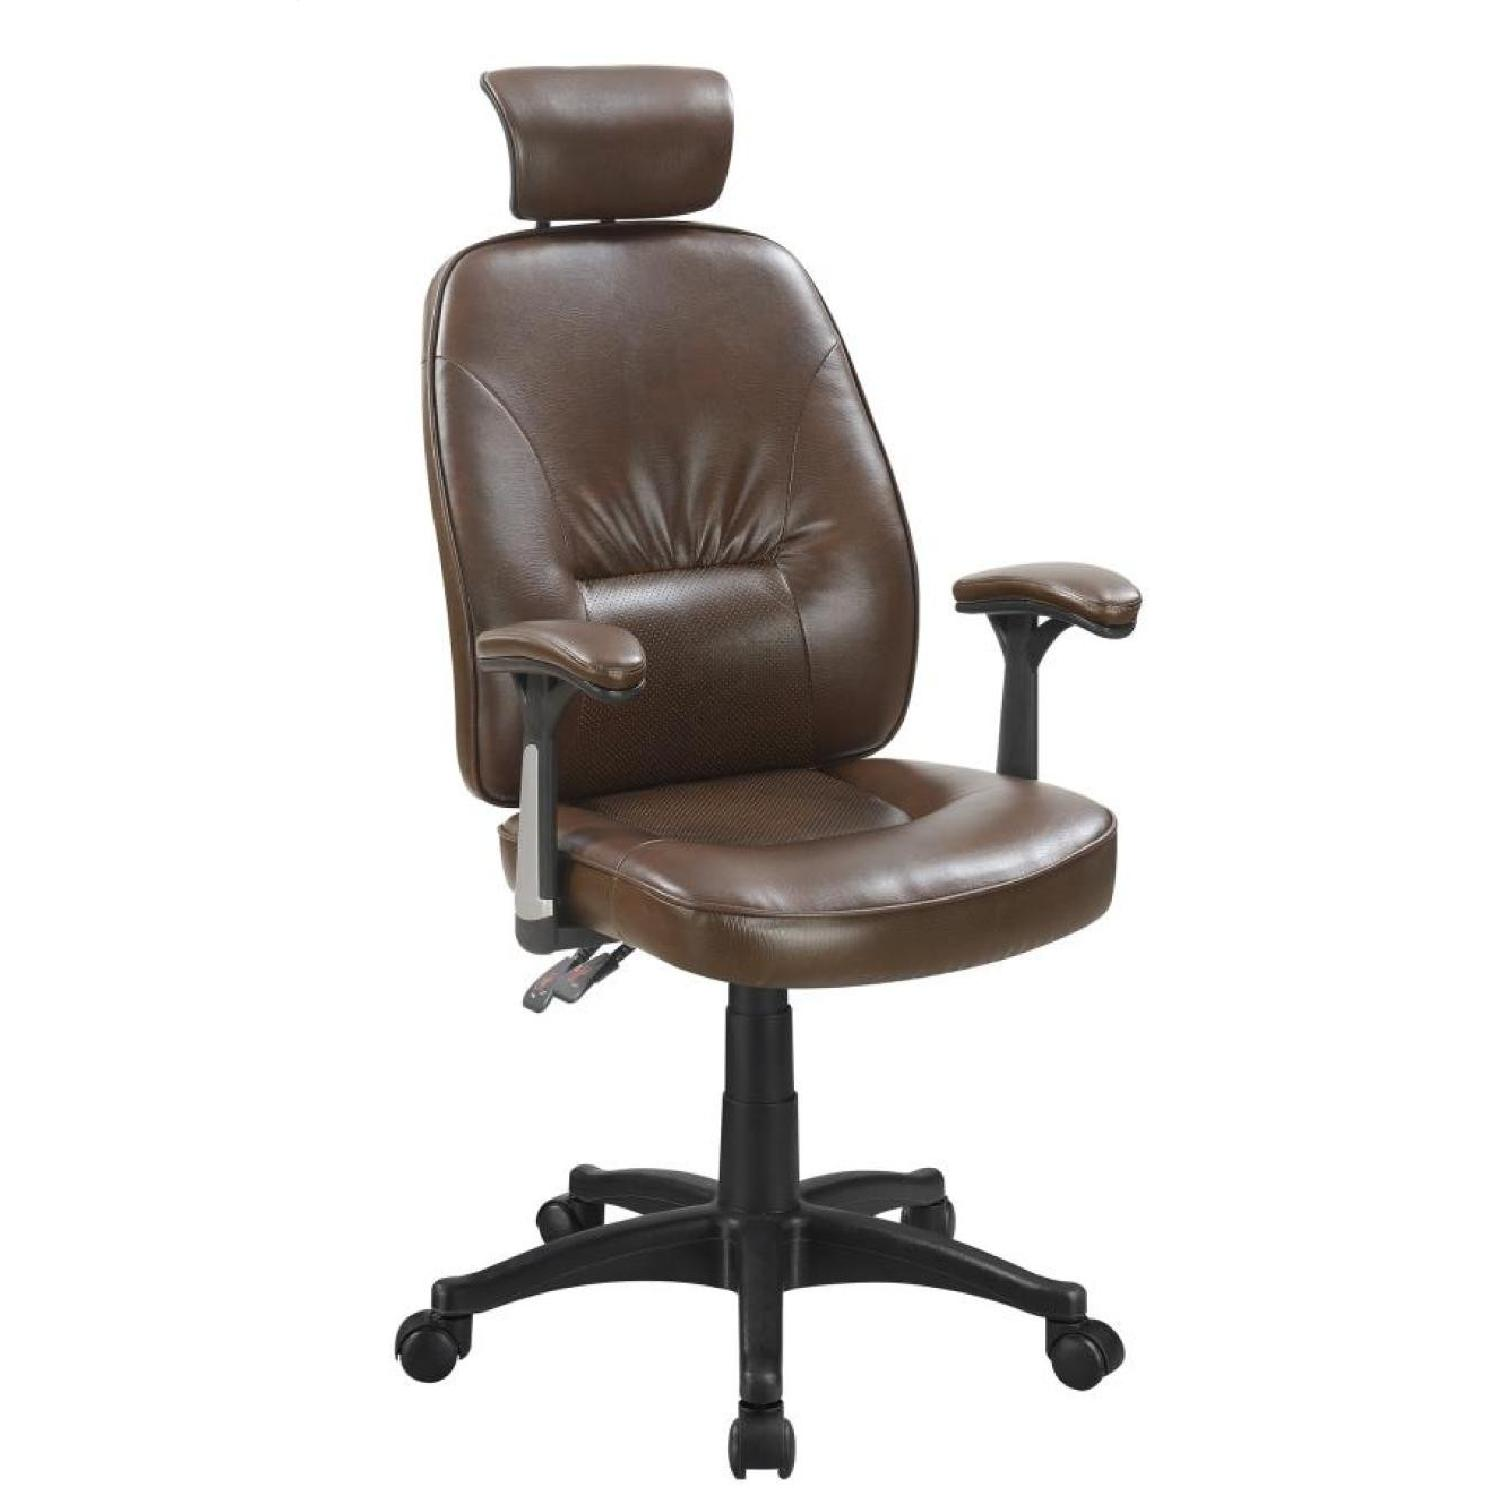 Office Chair in Padded Brown Leatherette w/ Arm & Head Rests